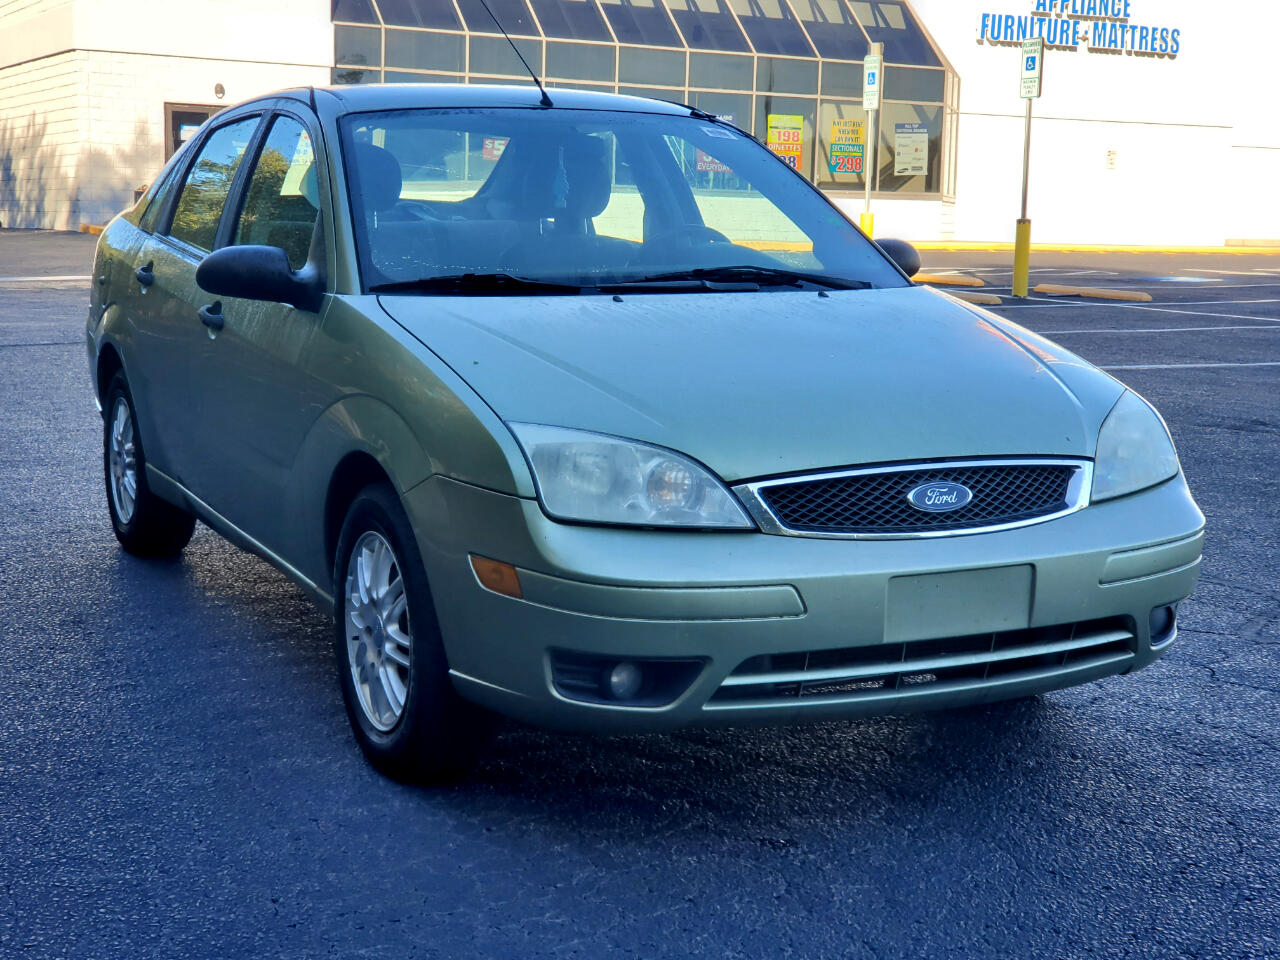 Ford Focus 4dr Sdn SE 2007